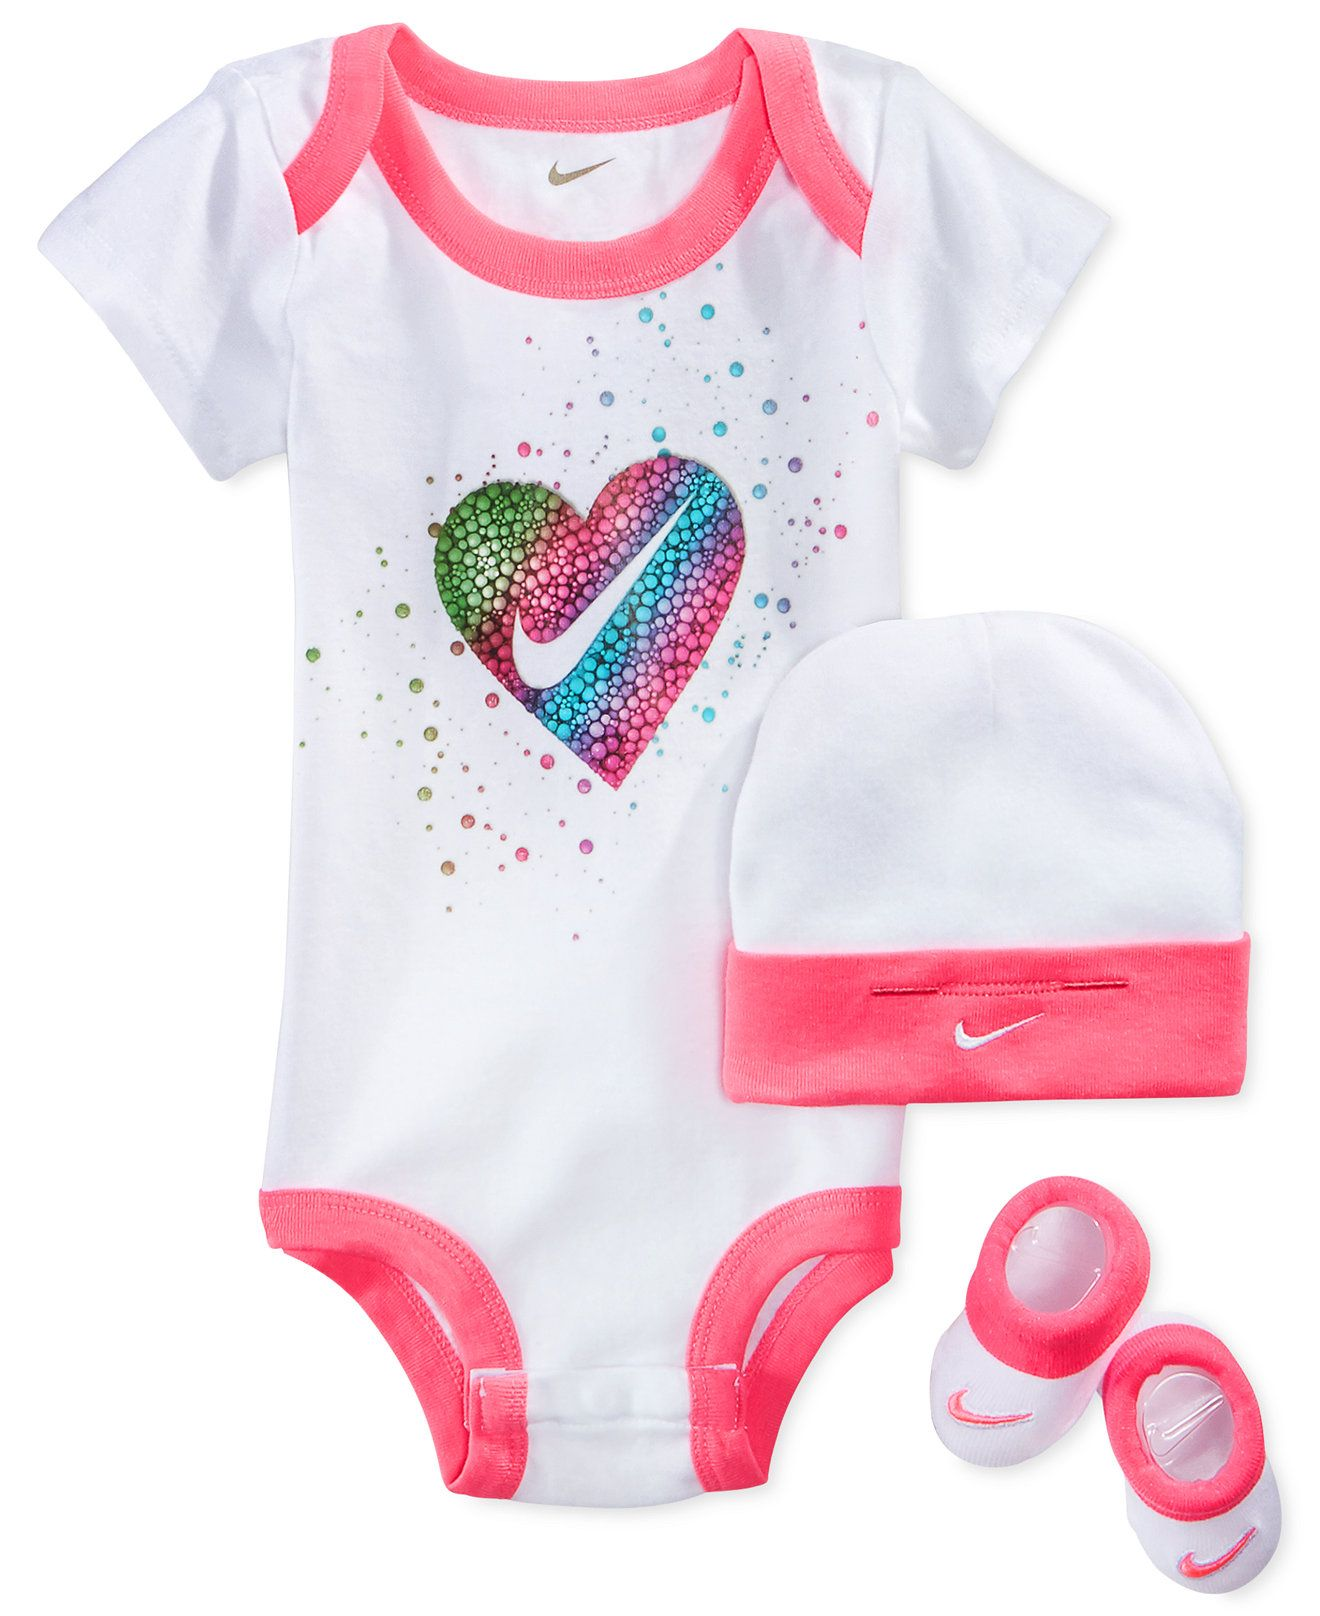 9c8abfb8f15f Kids fashion.....baby girl